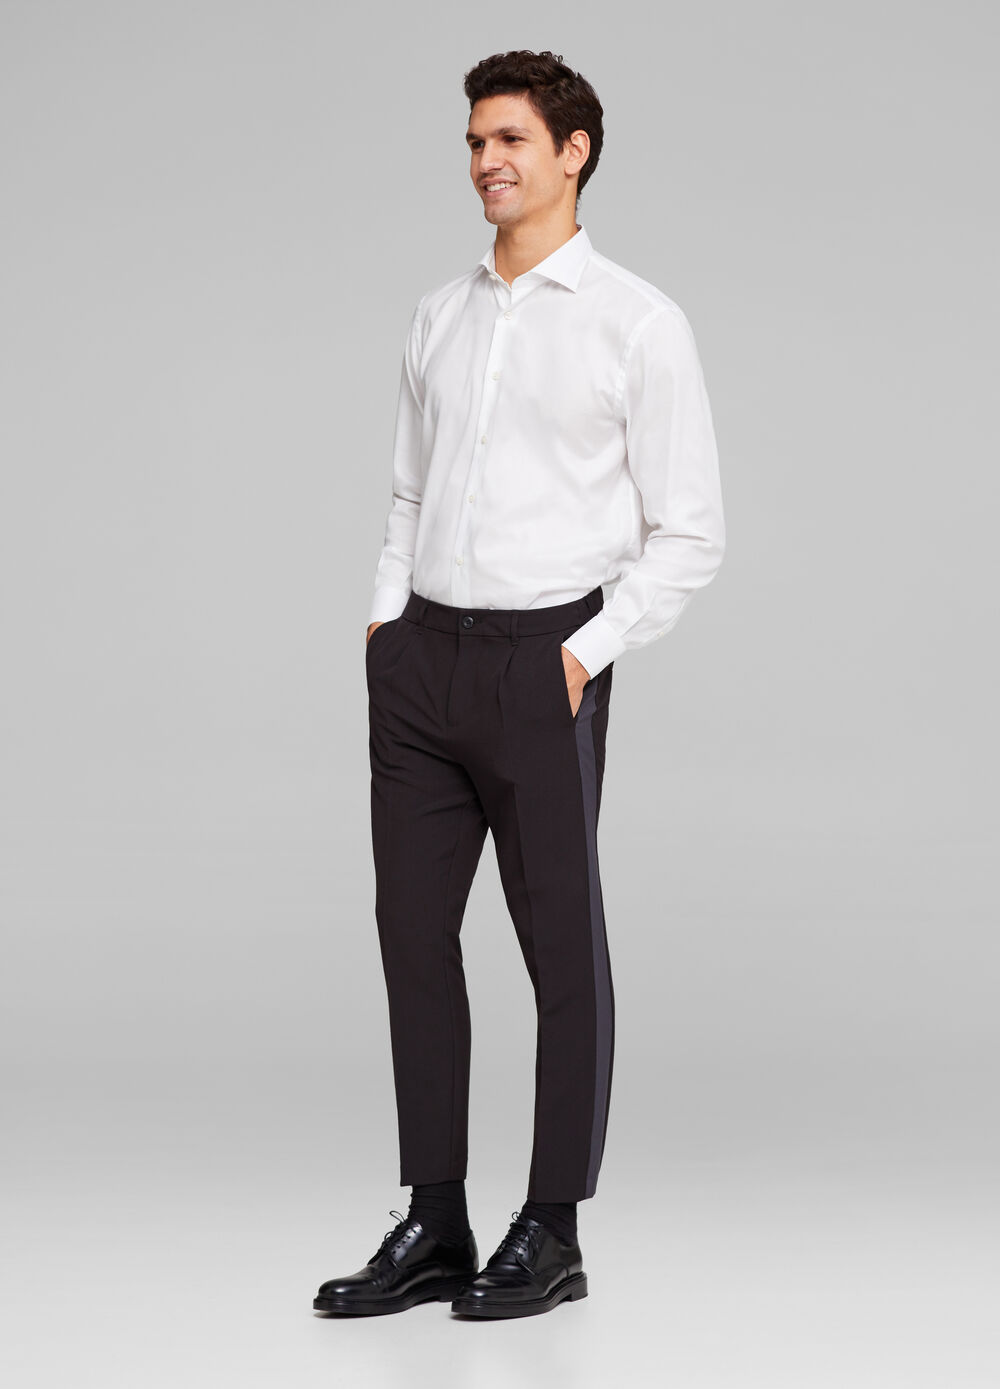 Pantaloni slim fit con bande laterali